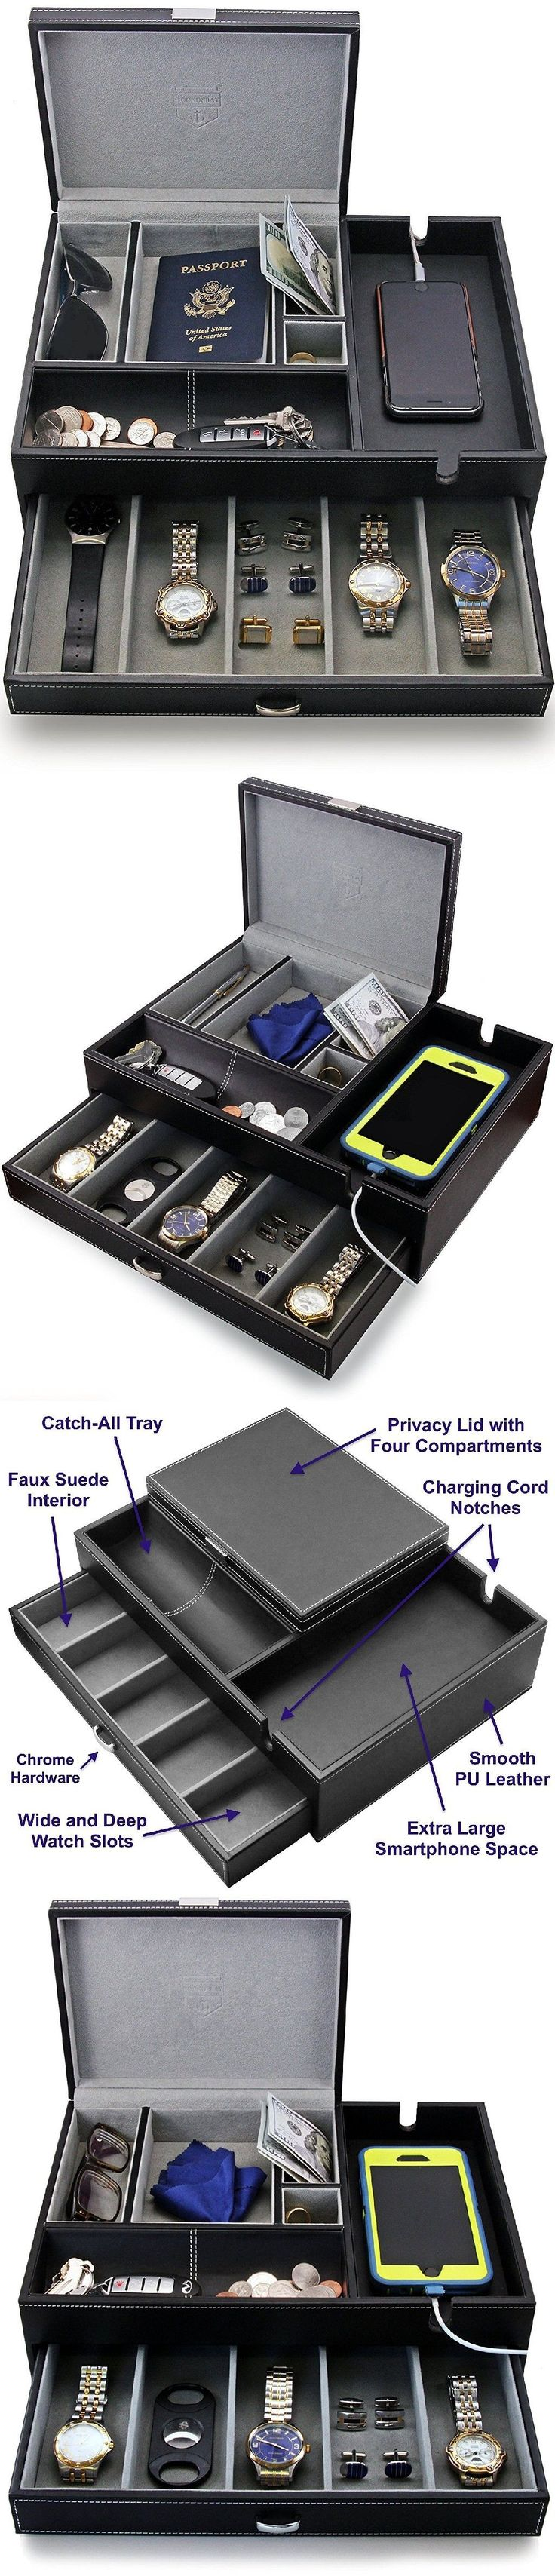 Watch 168164: Men Watch Box Large Jewelry Drawer Organize Display Store Cufflink Phone Dresser -> BUY IT NOW ONLY: $83.98 on eBay!